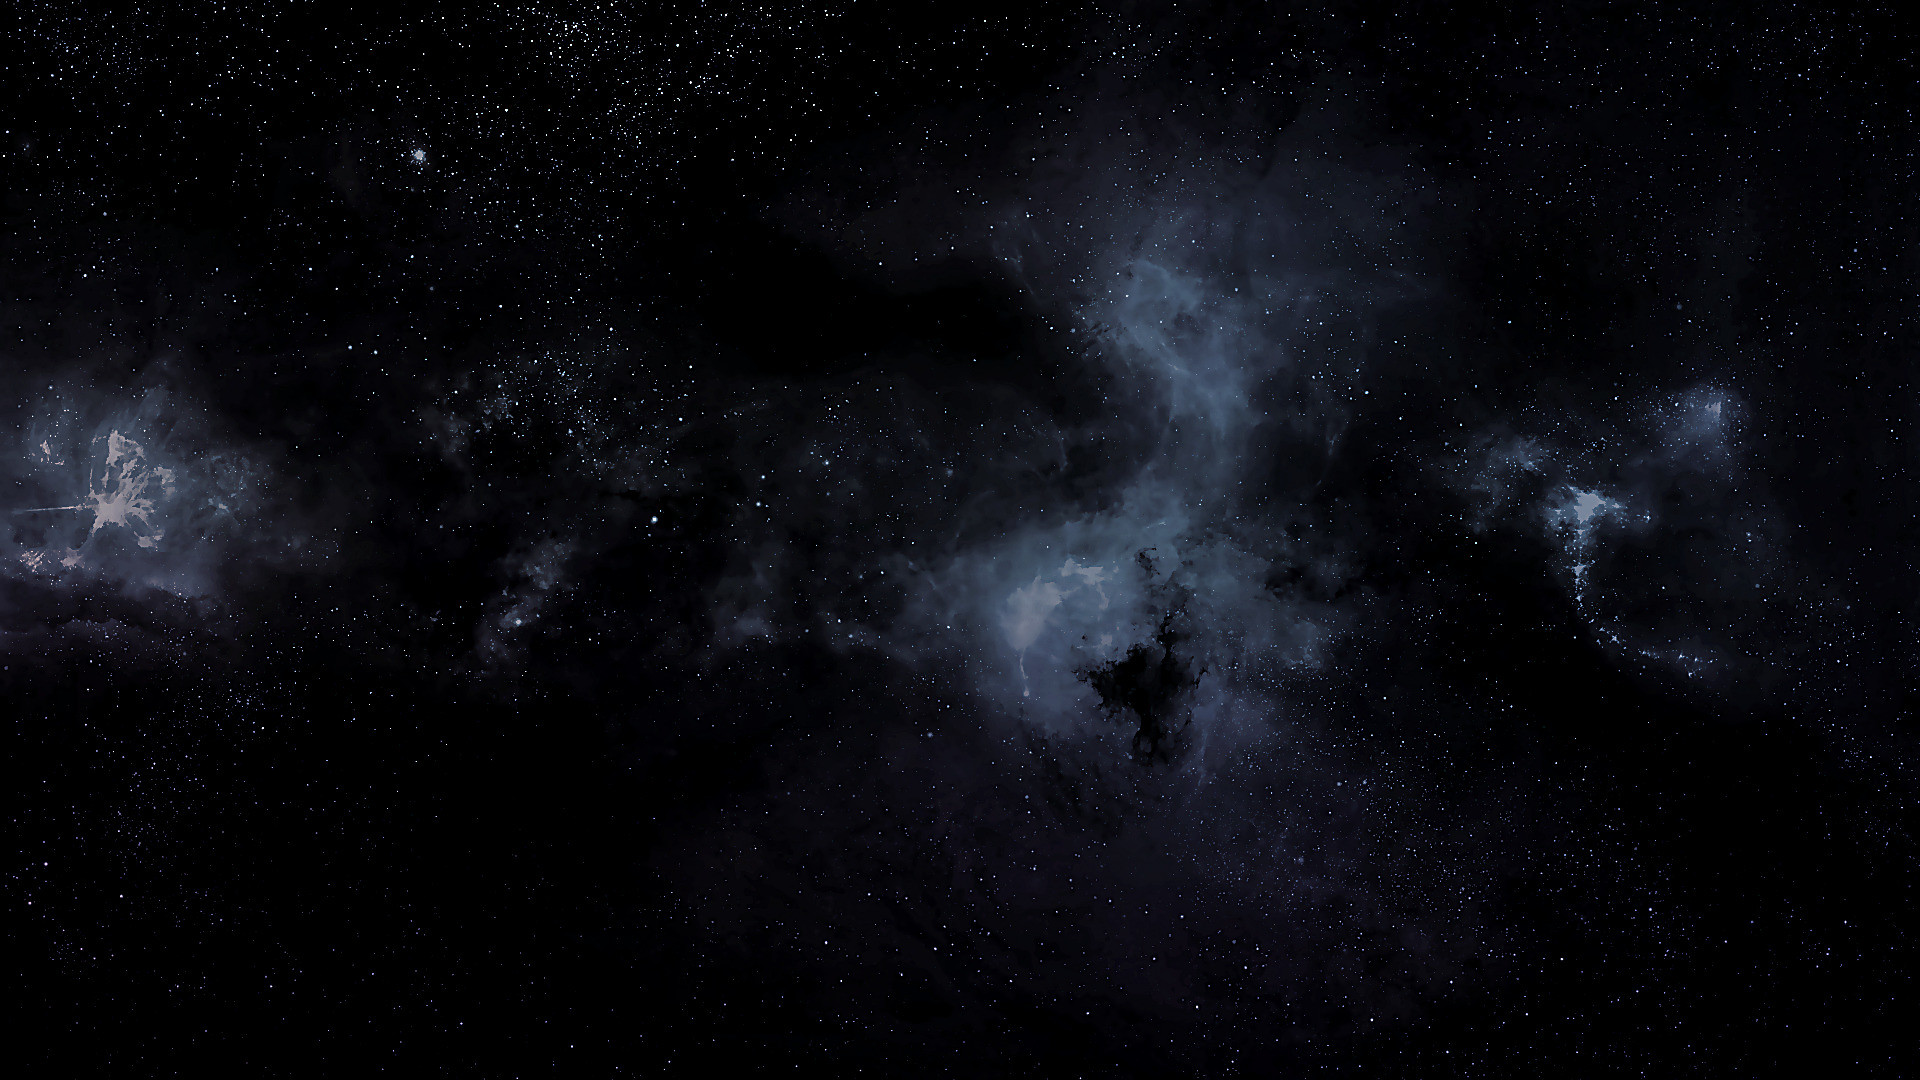 Space wallpapers 4k 77 background pictures - Dark space wallpaper ...